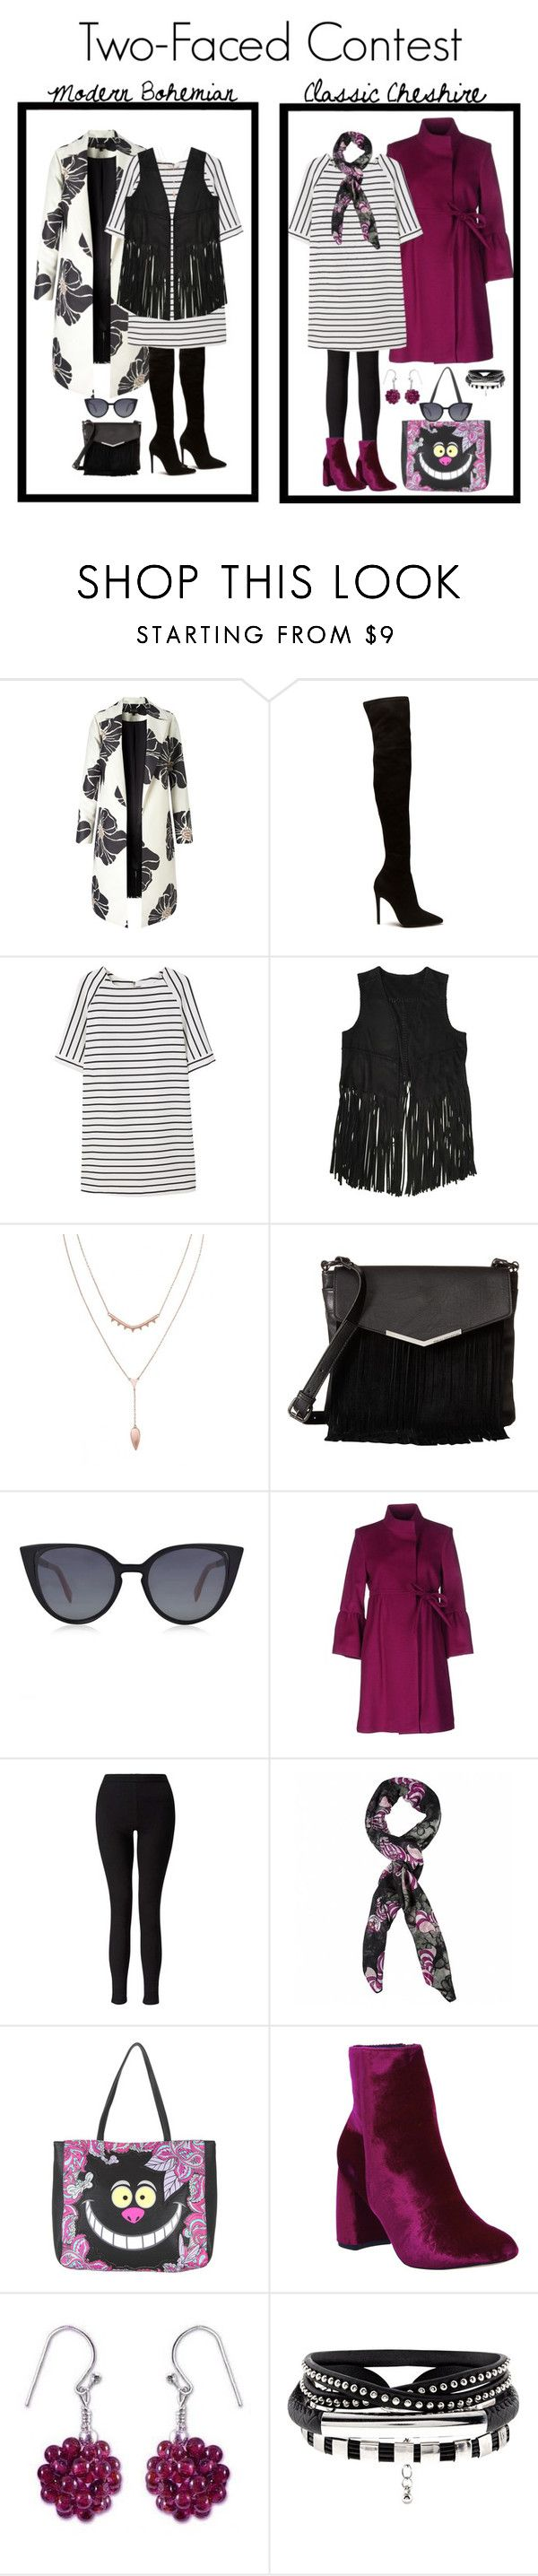 """""""Two-faced Contest: Modern & Classic"""" by ms-ironickel ❤ liked on Polyvore featuring MANGO, BLANKNYC, French Connection, Fendi, Aniye By, Miss Selfridge, Disney, Office, NOVICA and modern"""